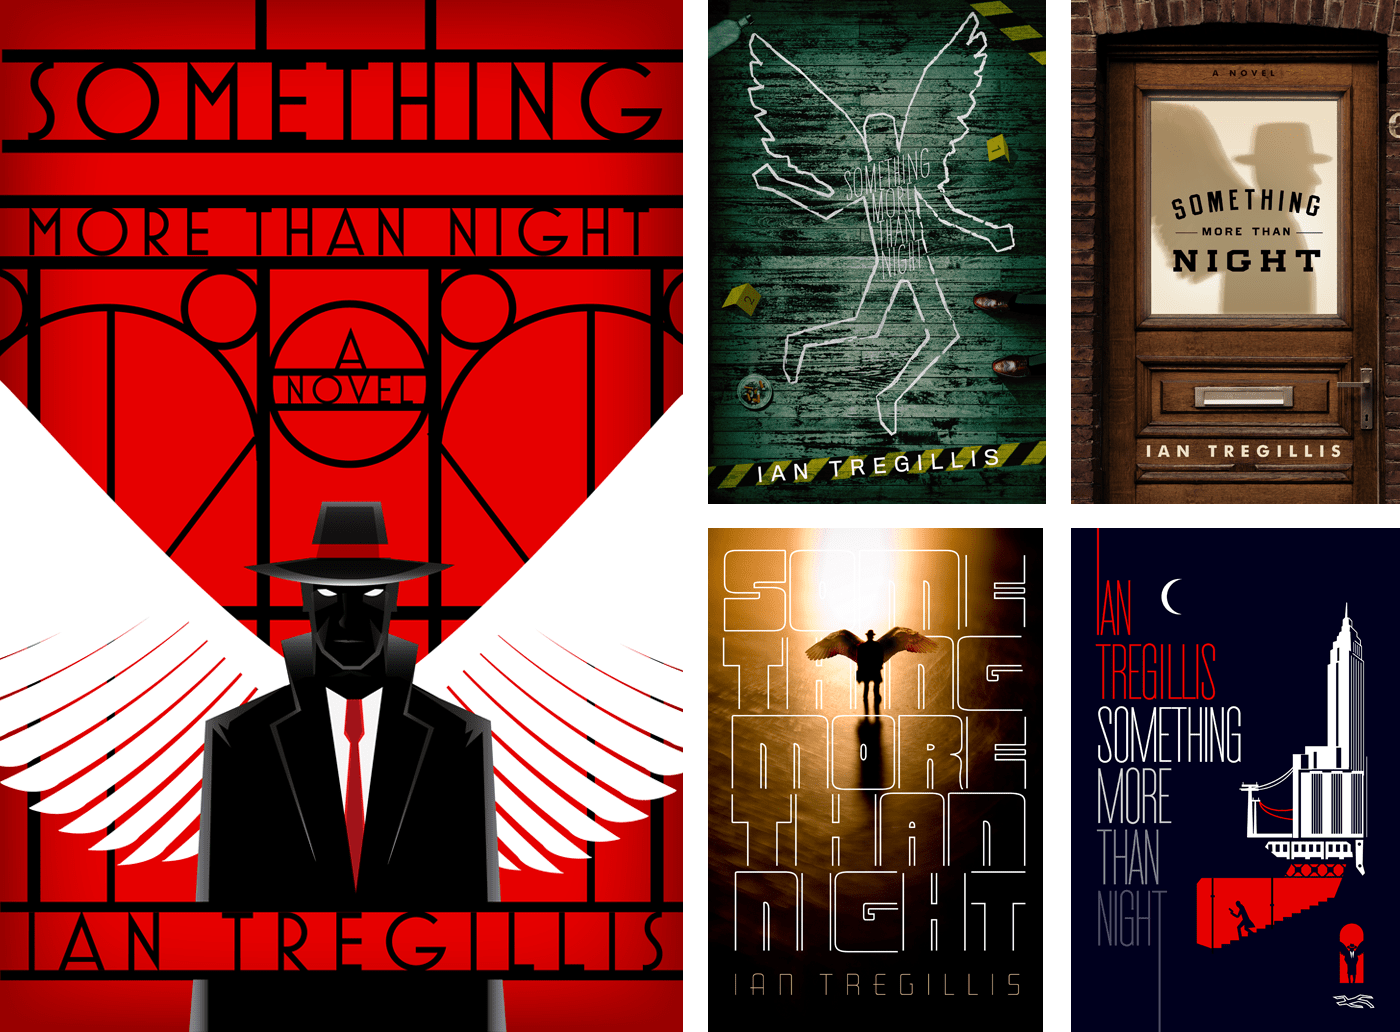 Something More Than Night by Ian Tregillis alternate cover designs by Will Staehle